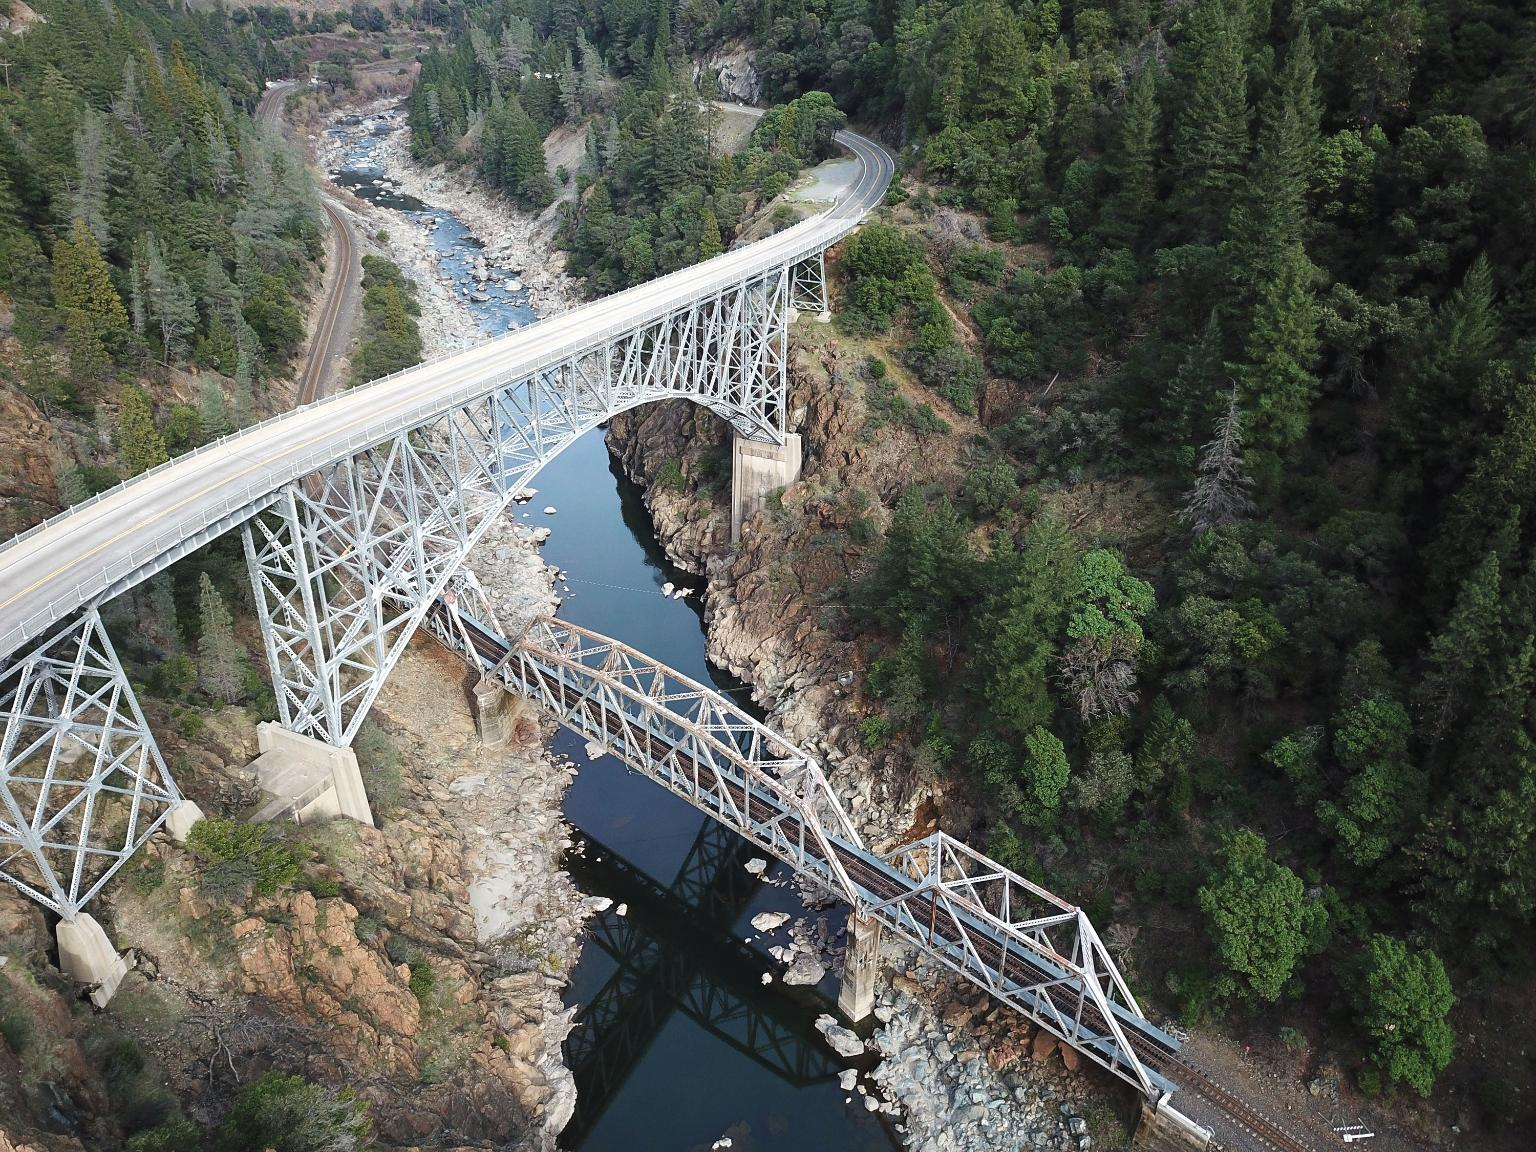 A Union Pacifc drone captured this image during a culvert inspection demonstration in Pulga, California.